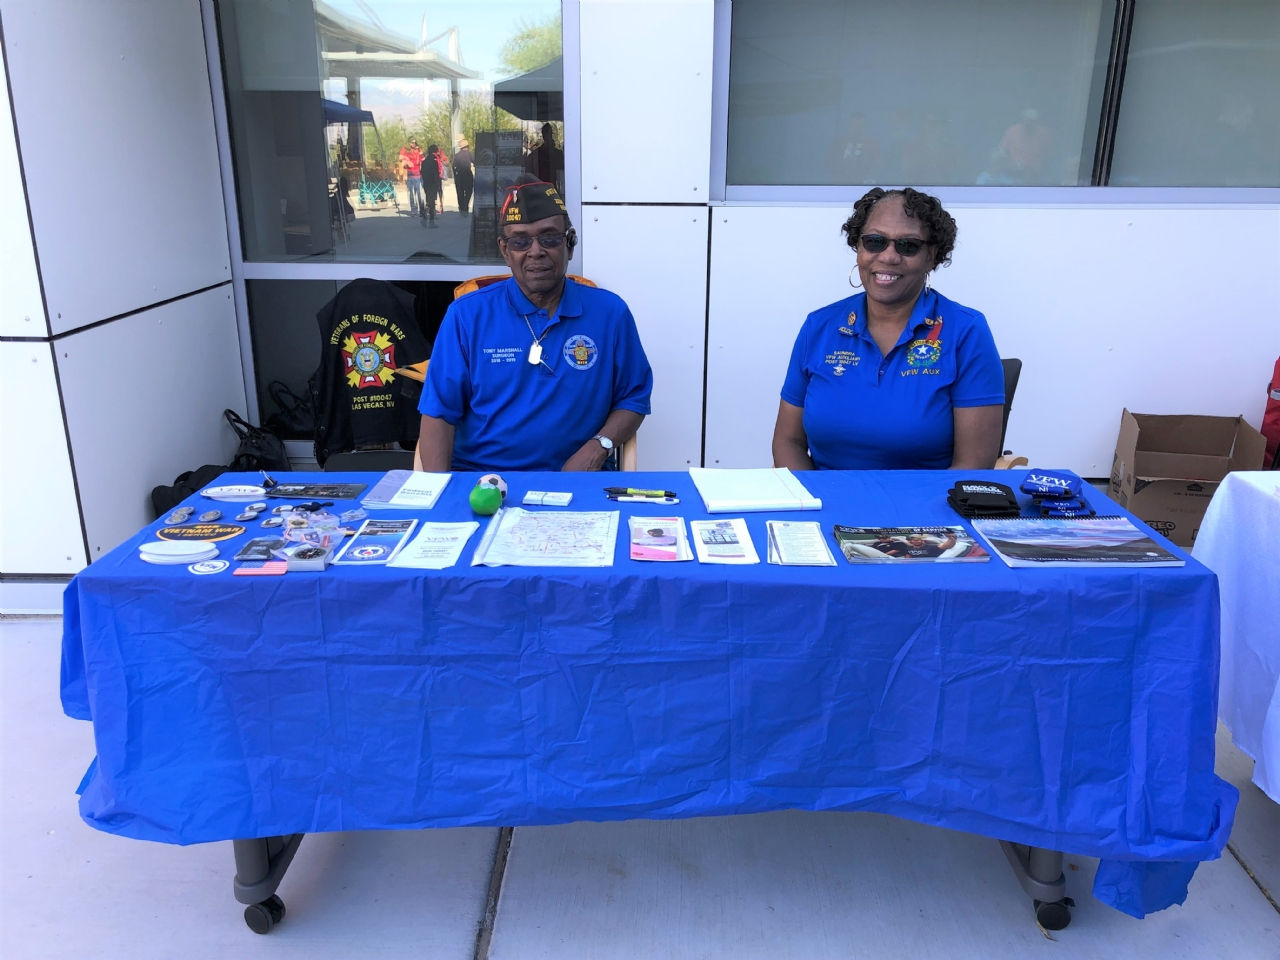 Department Representatives at the VA MayFair and wellness event